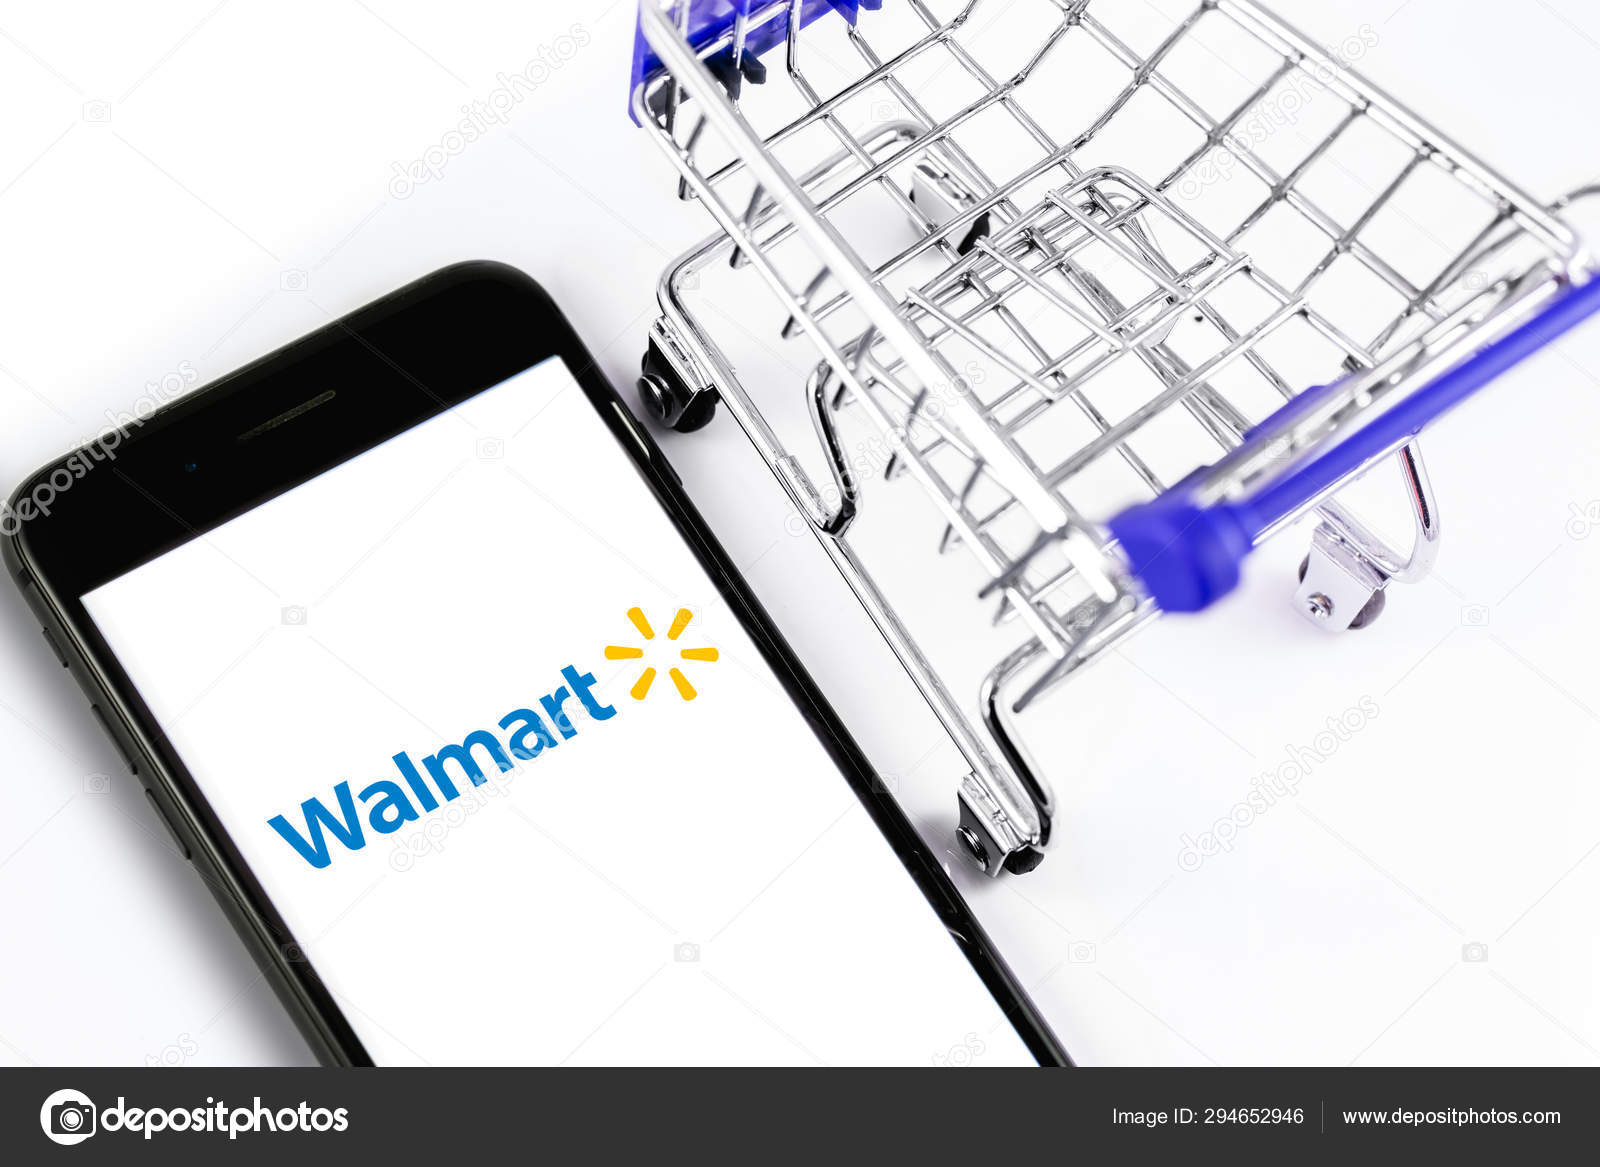 Walmart Stock Phone Number >> Shopping Cart And Walmart Logo On The Screen Smartphone